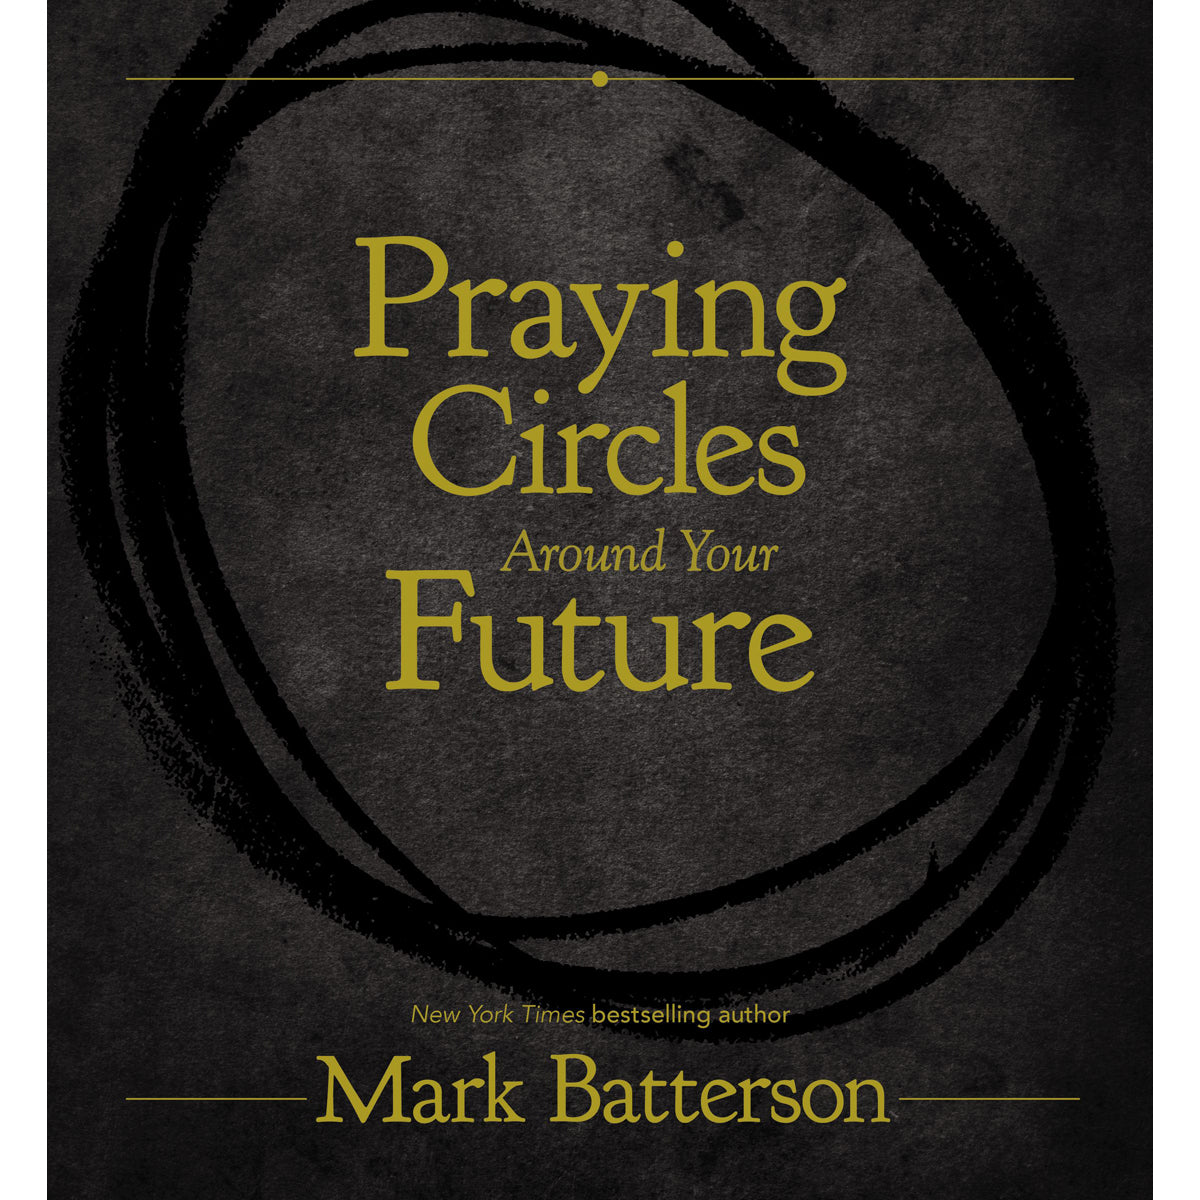 Praying Circles Around Your Future (Hardcover)